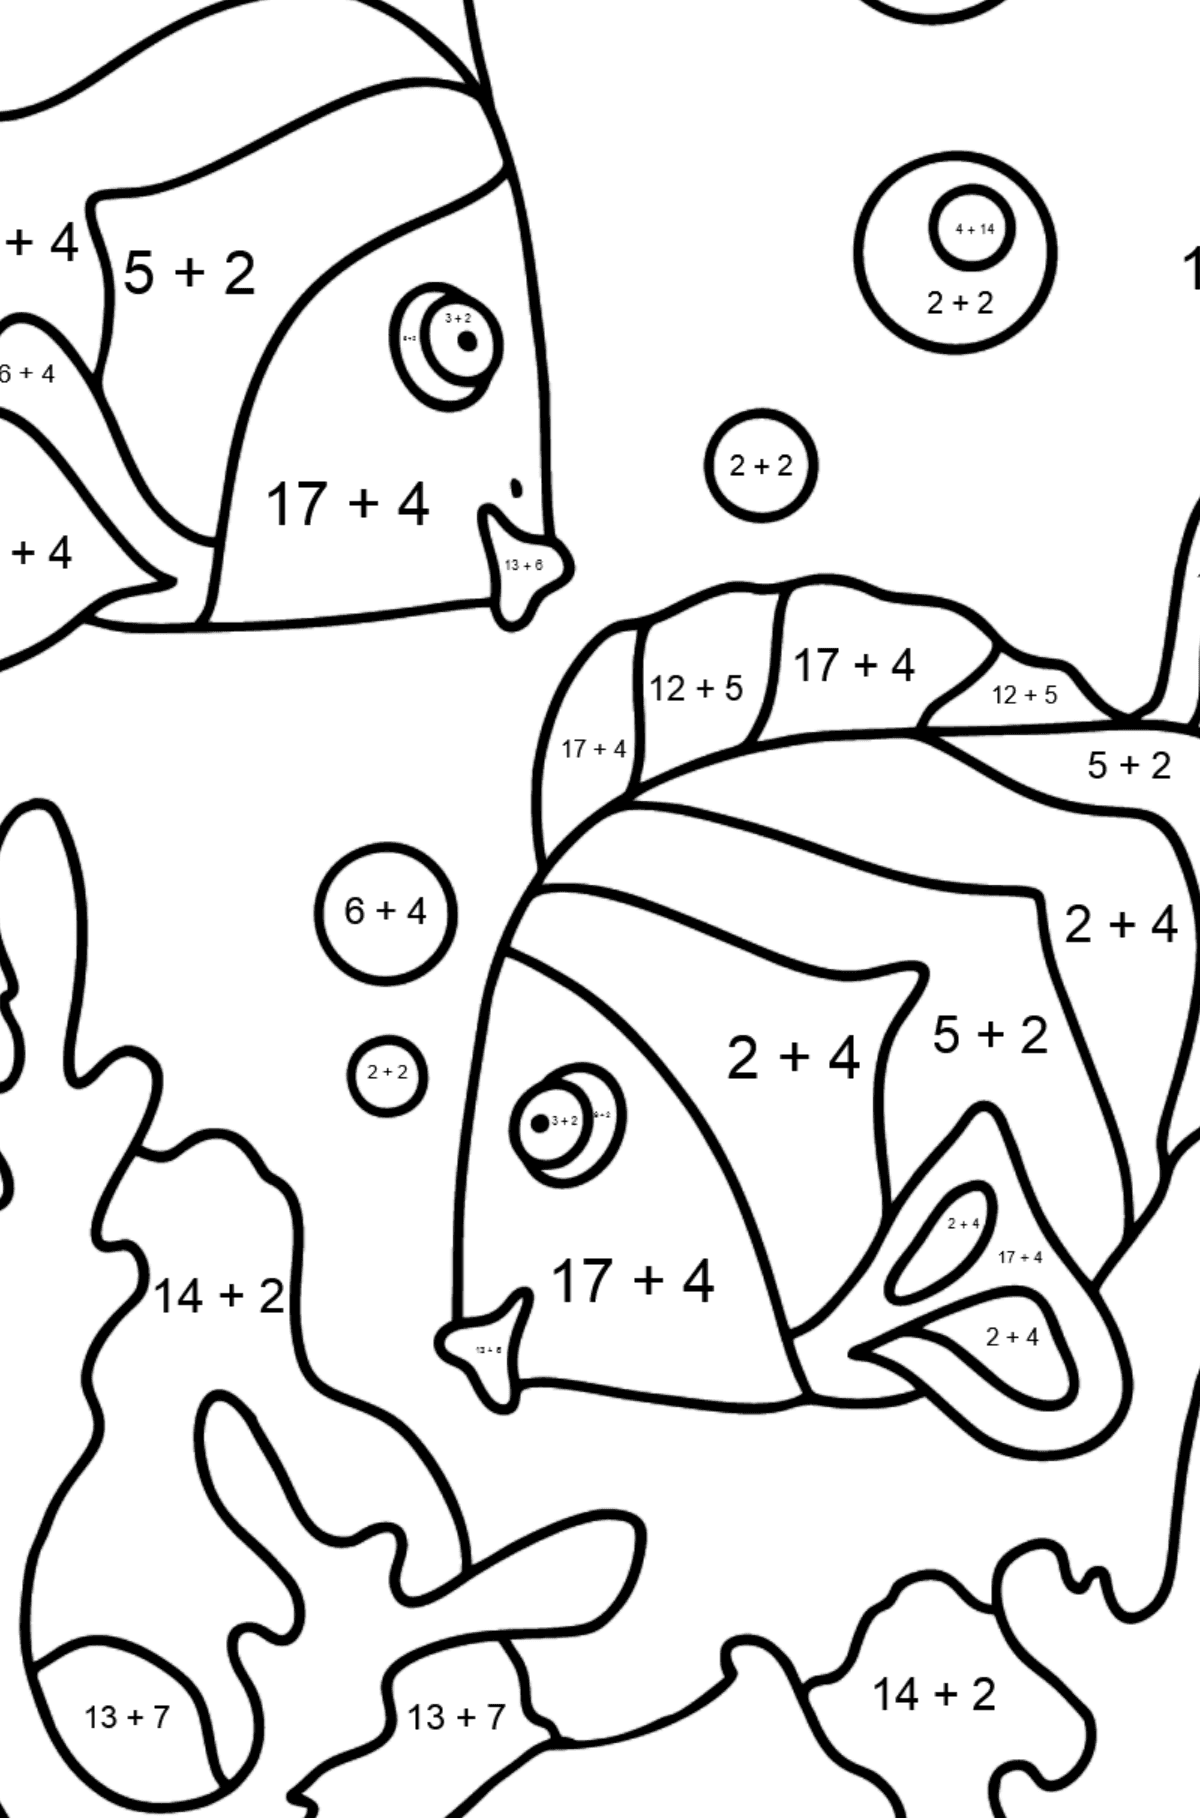 Coloring Page - Fish are Swimming Very Energetically - Math Coloring - Addition for Kids